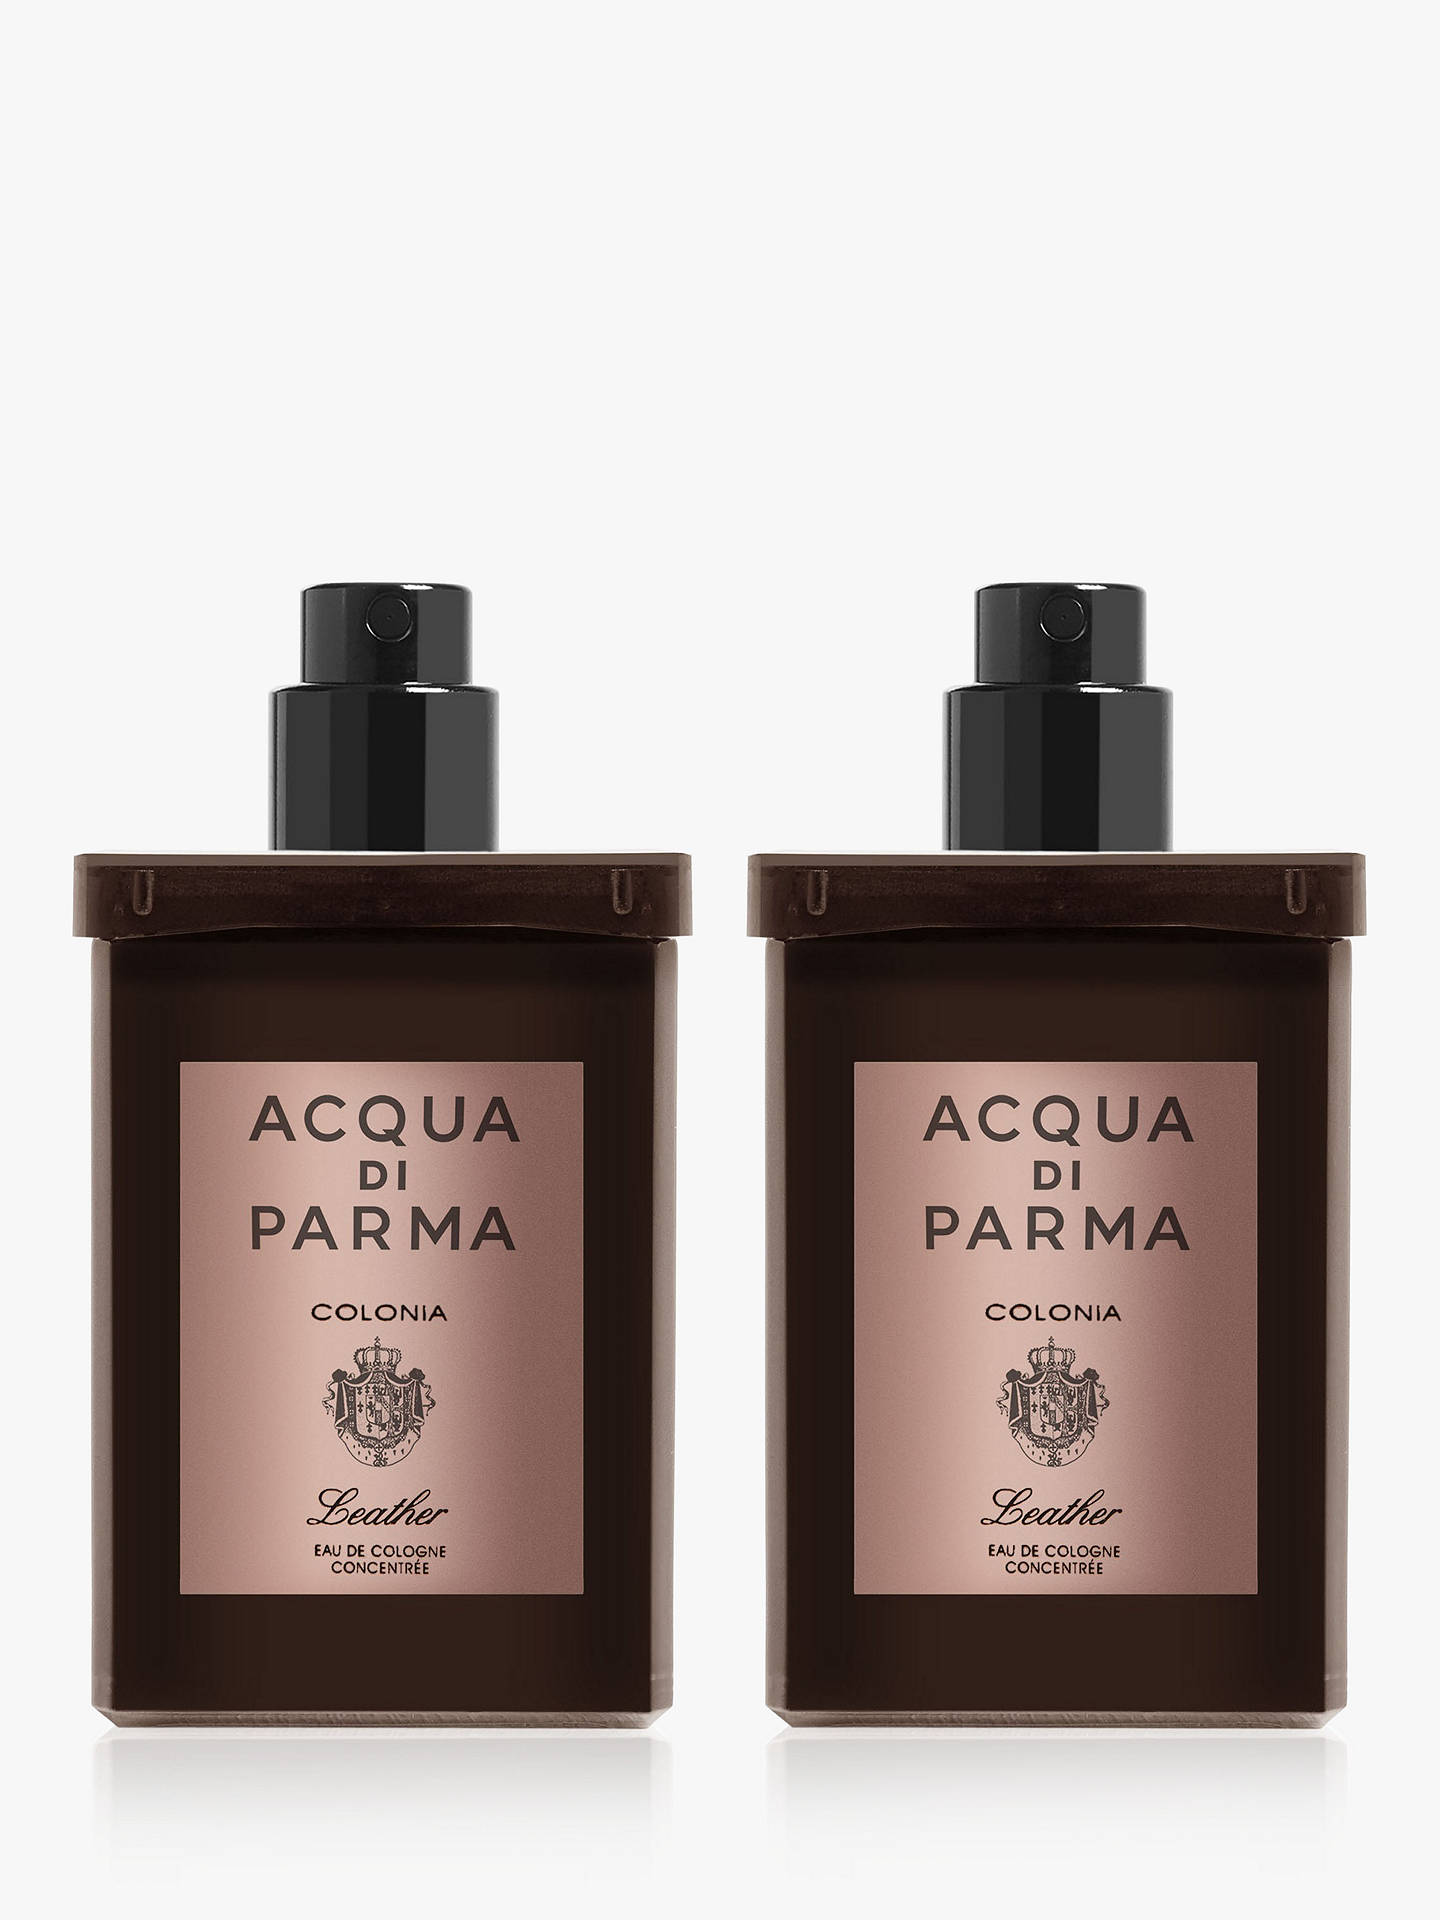 BuyAcqua di Parma Colonia Leather Eau de Cologne Concentrée Travel Refill Spray, 2 x 30ml Online at johnlewis.com